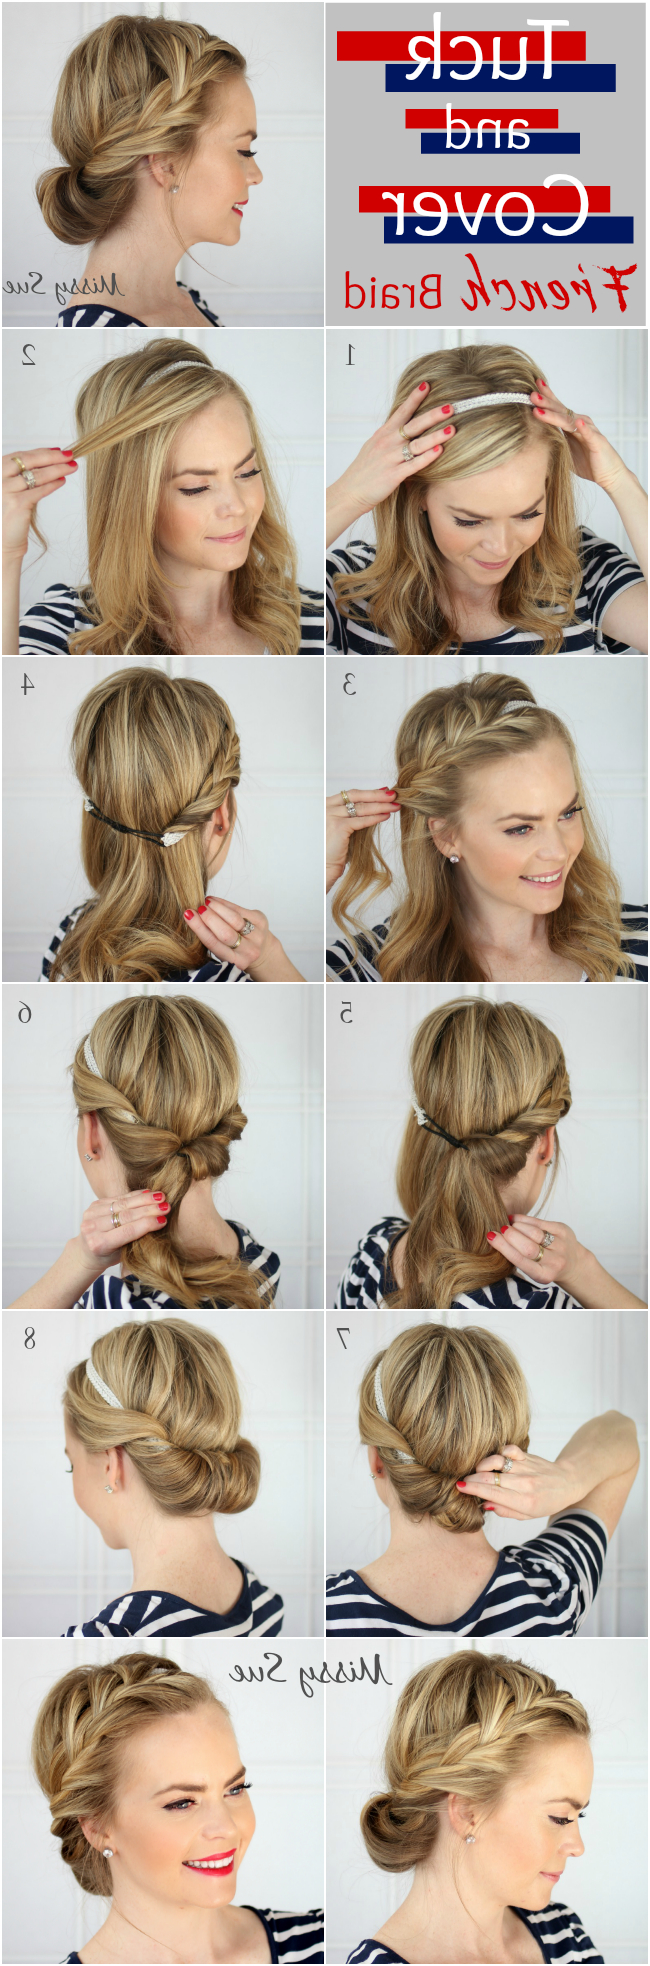 10 Best Diy Wedding Hairstyles With Tutorials (Gallery 18 of 20)